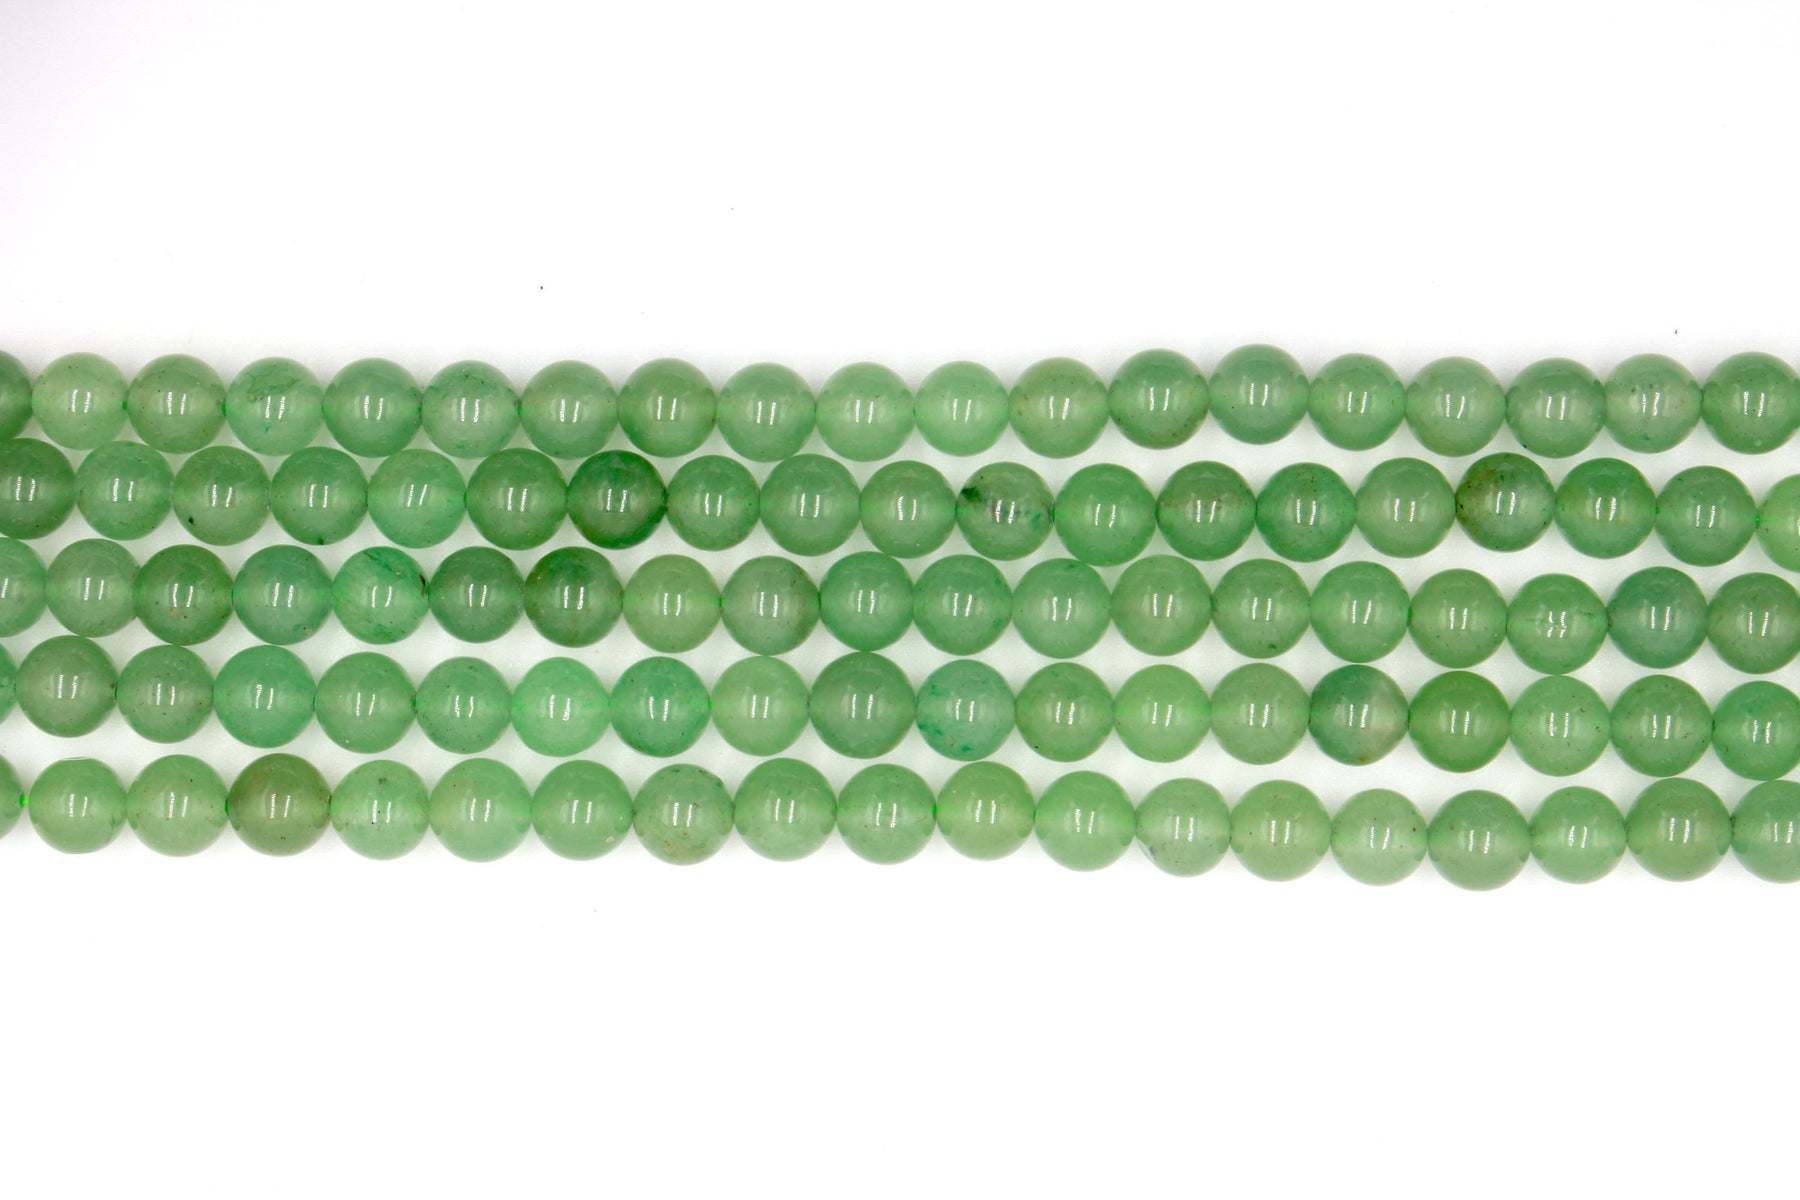 8mm green aventurine, round, glossy beads, 1 strand, 16 inches, approx. 48. beads.